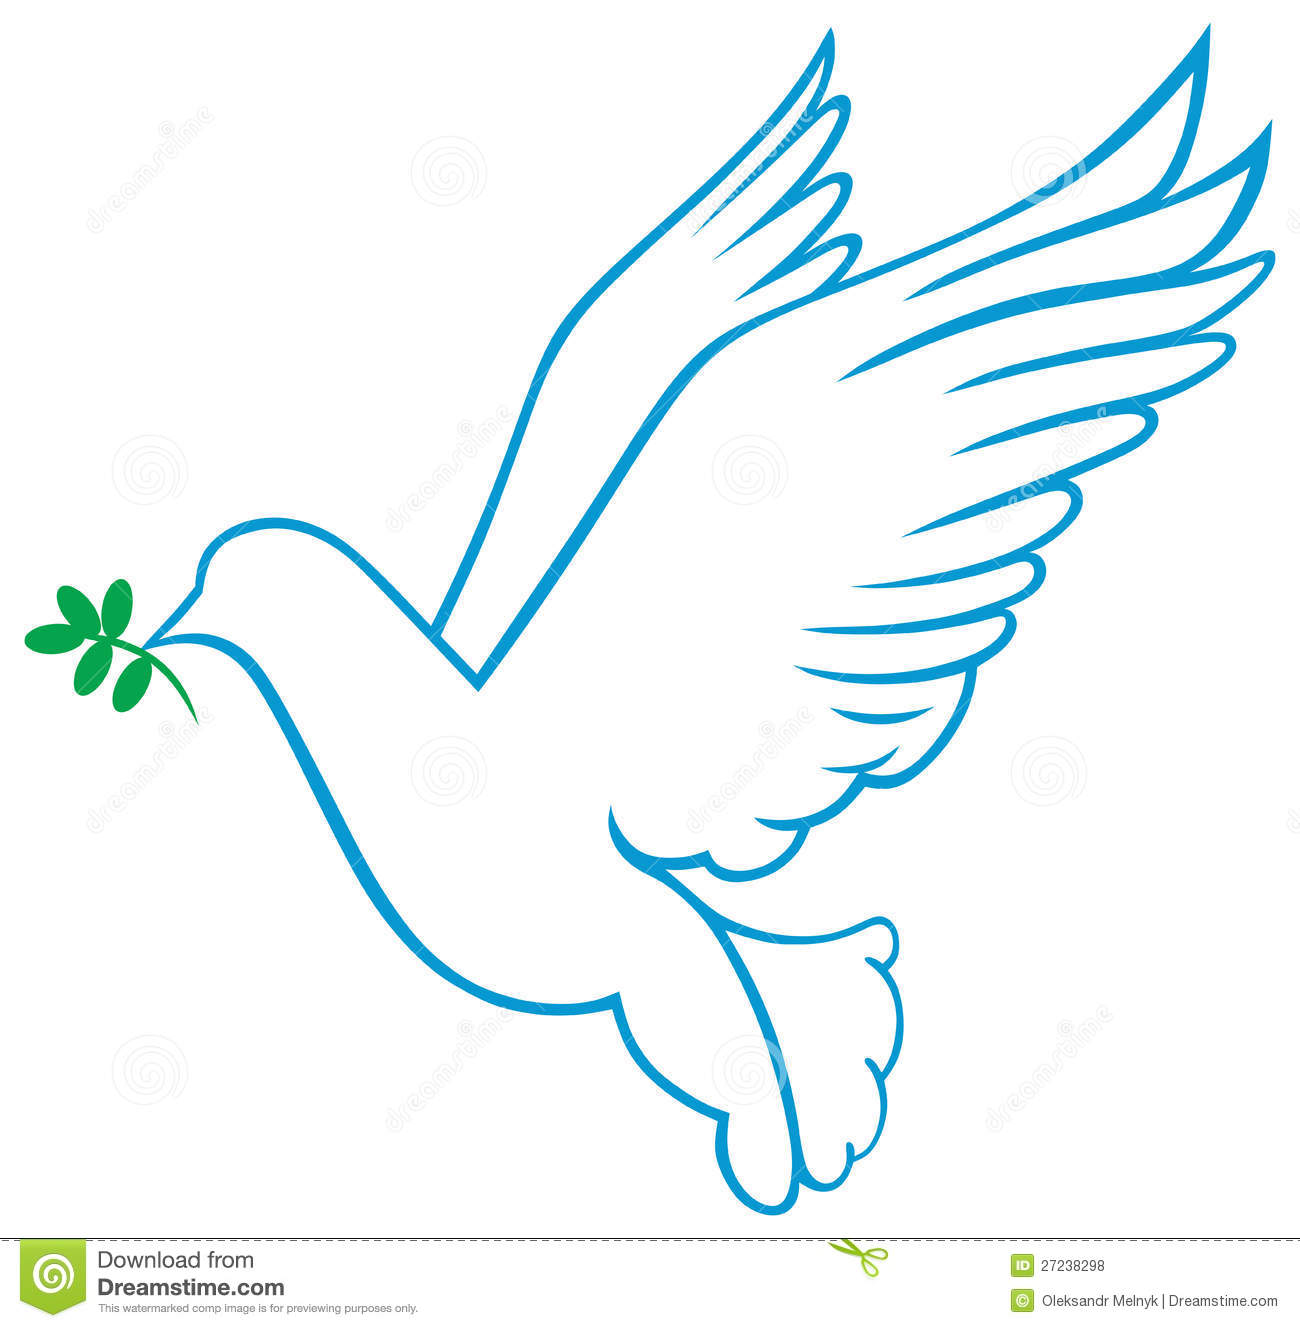 Vector Dove Symbol Royalty Free Stock Photos - Image: 27238298